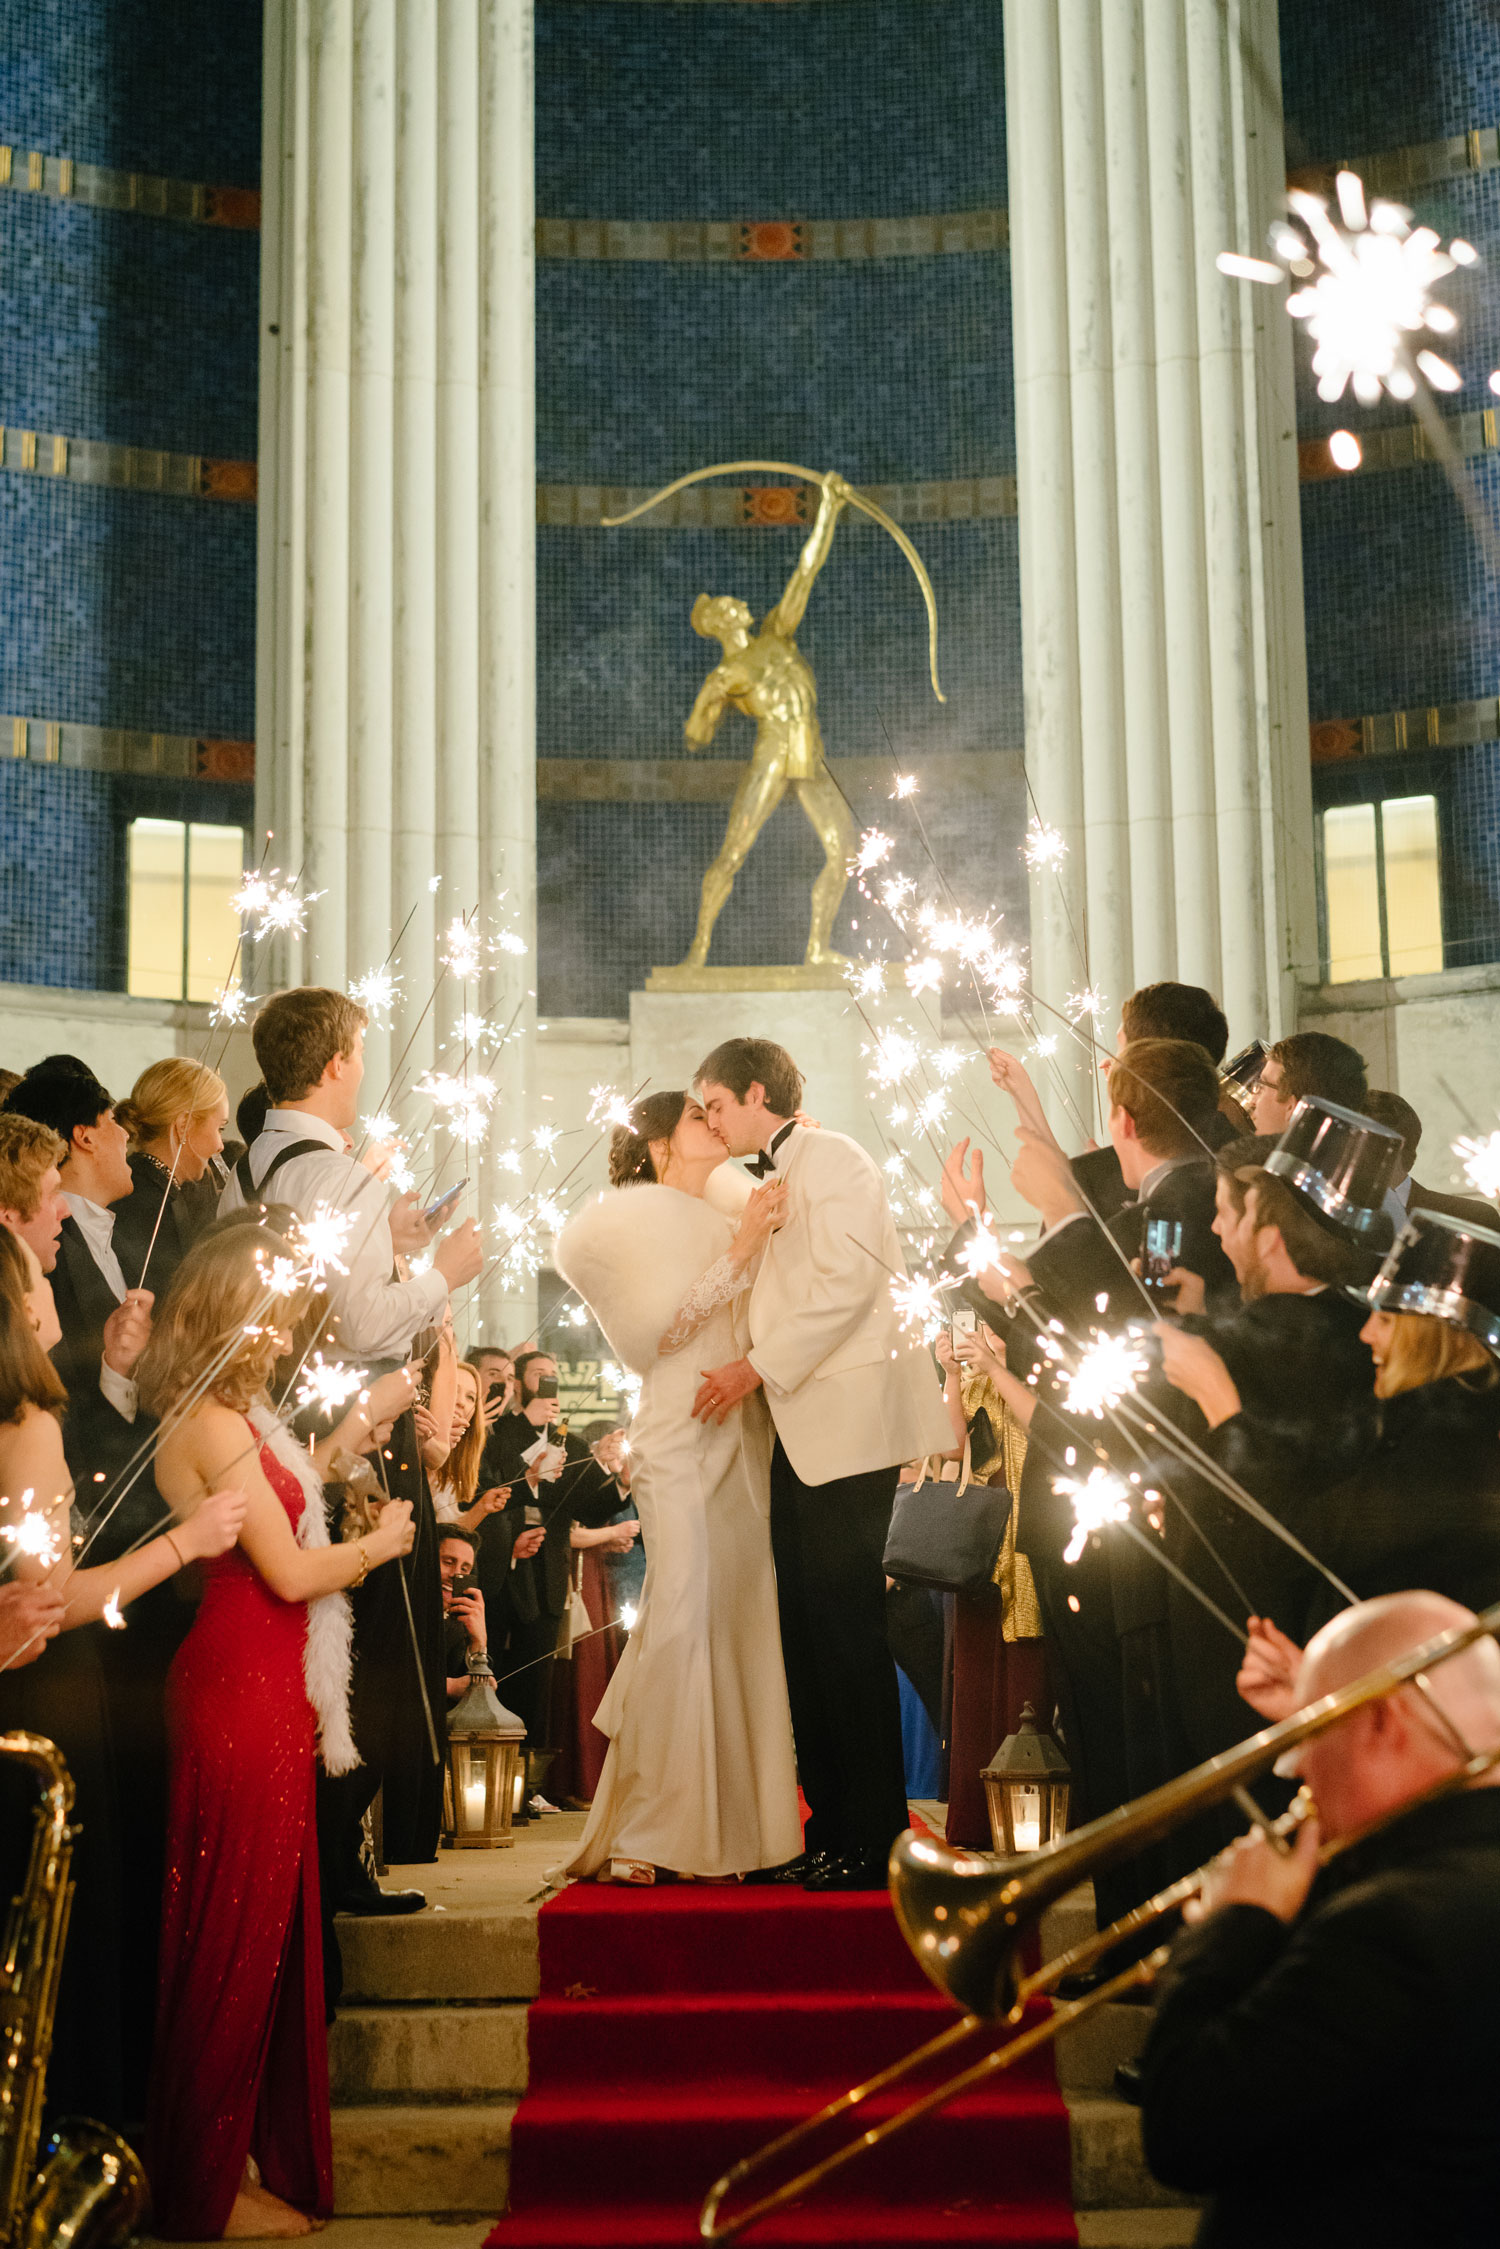 Inside Weddings Fall Winter 2017 Issue Preview new year's eve wedding reception getaway grand exit sparklers